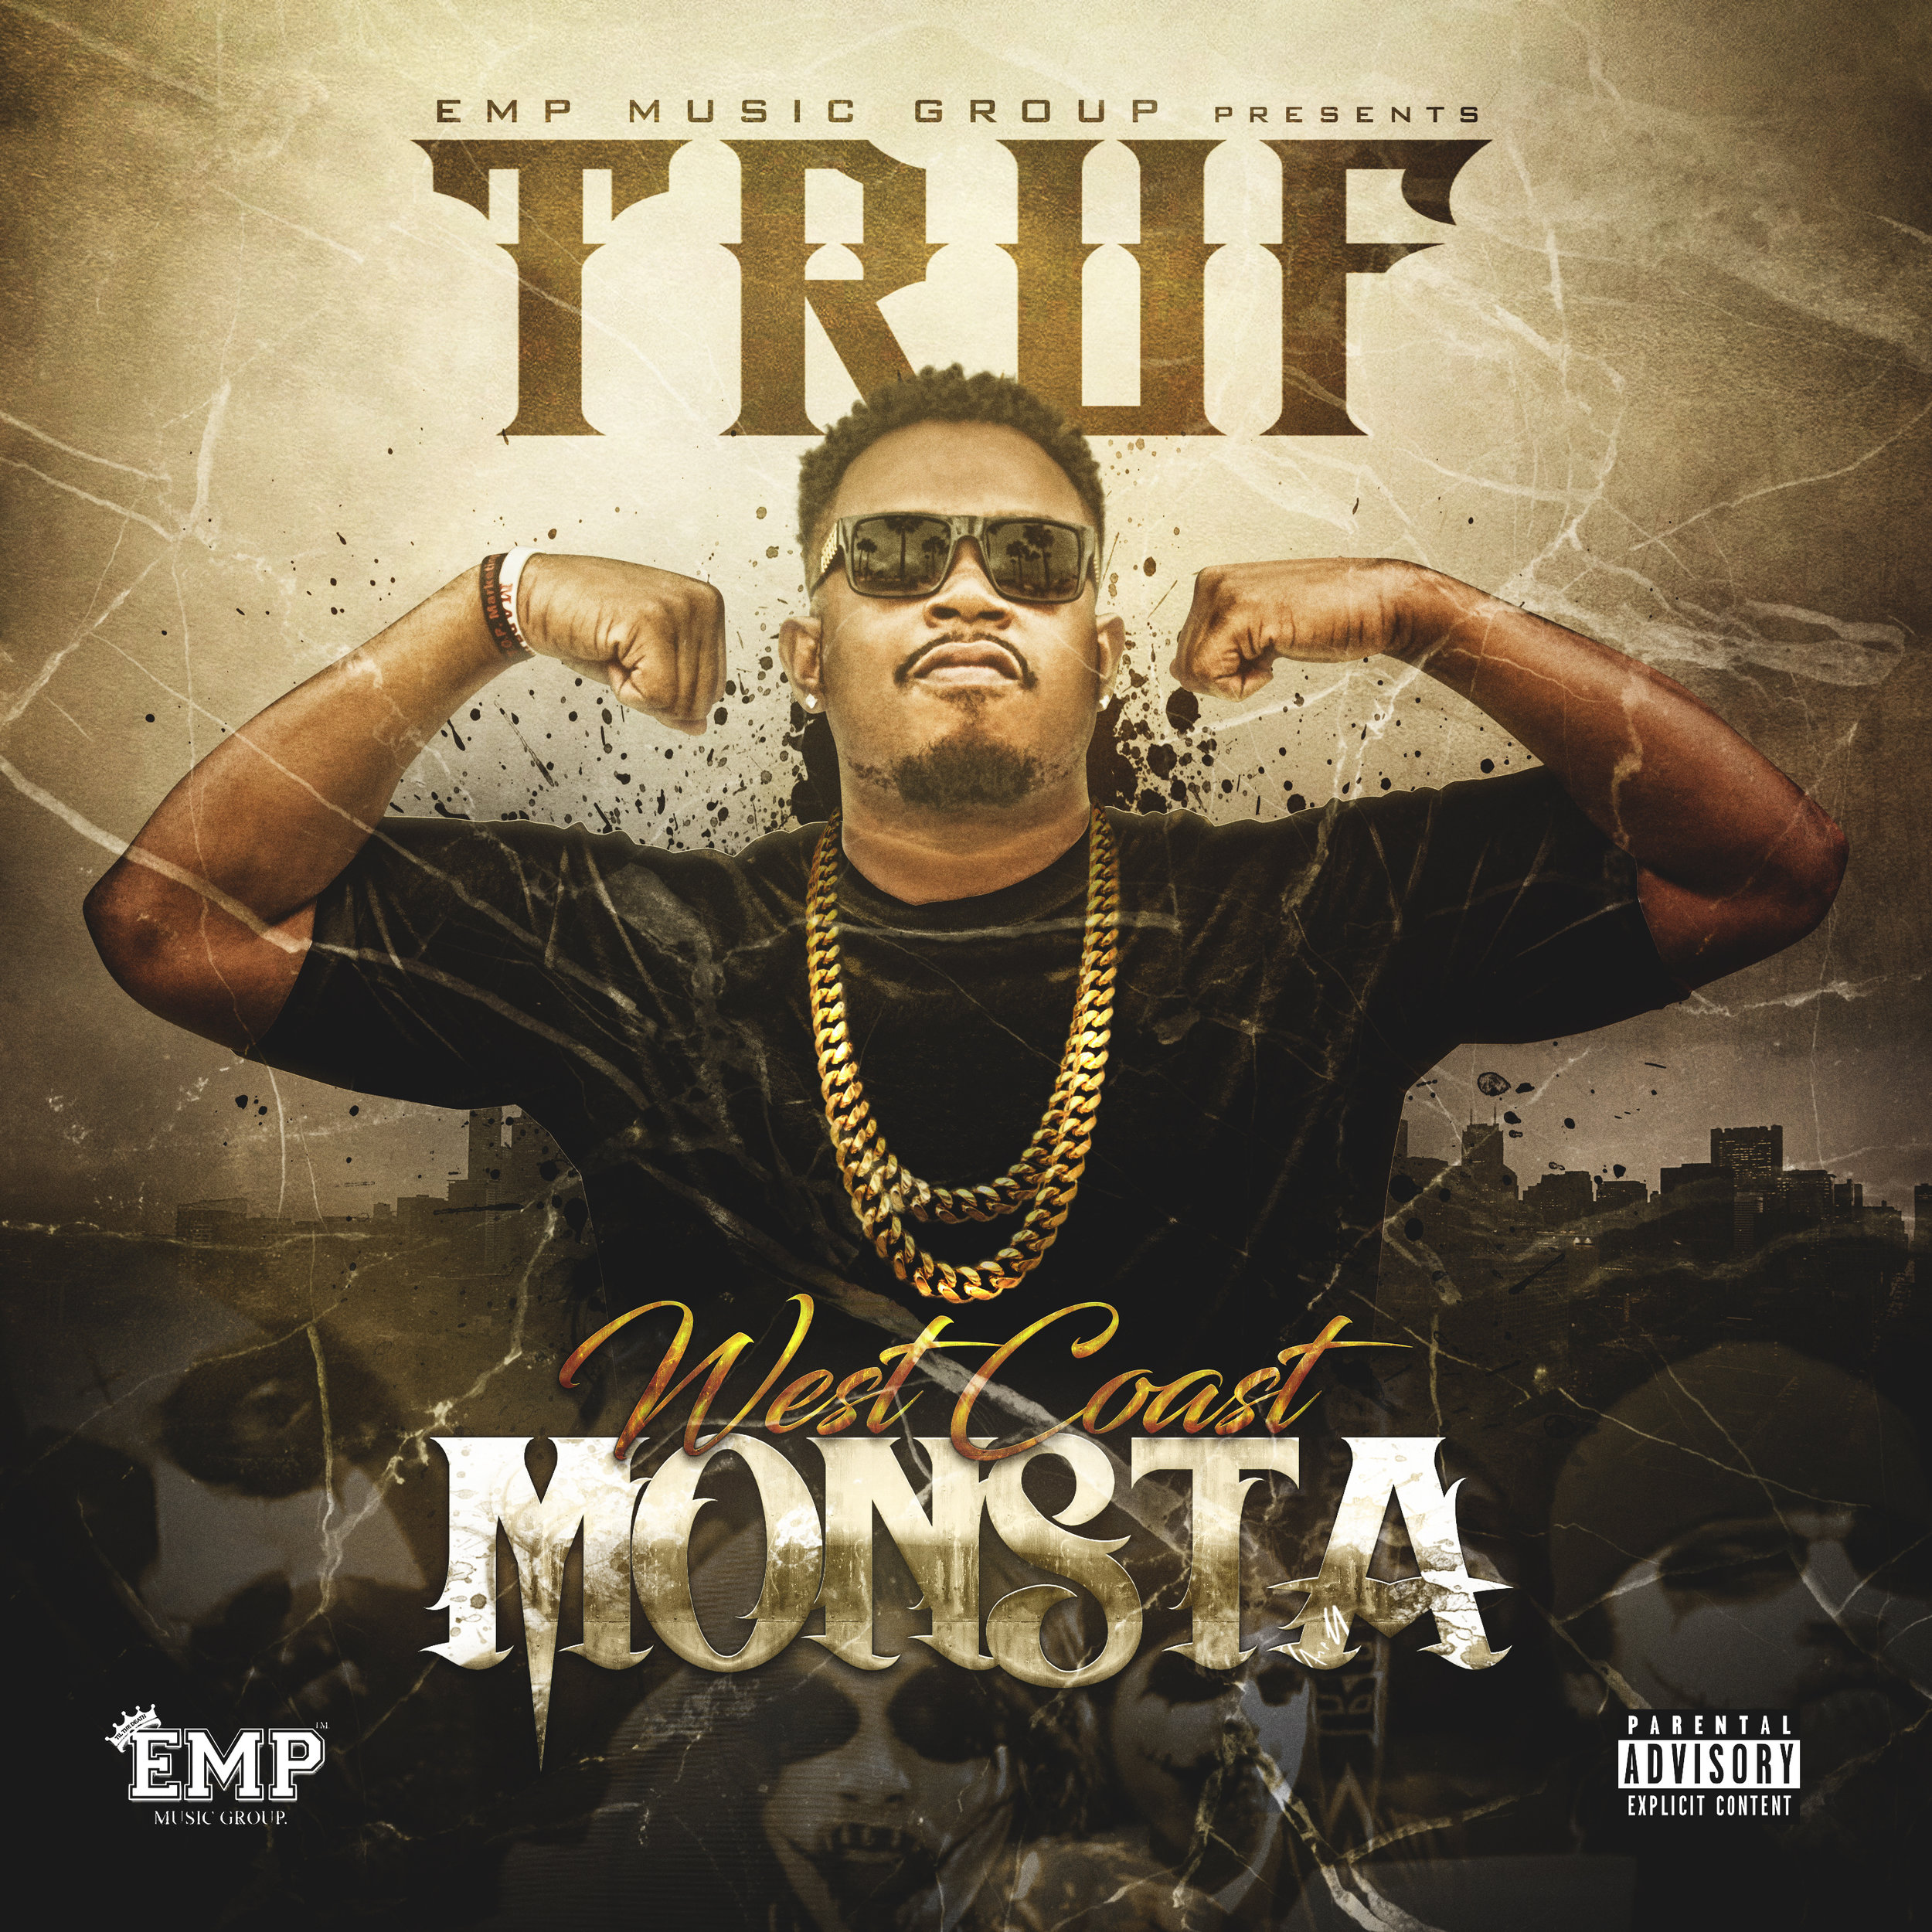 Truf - West Coast Monsta - Explicit Single.jpg